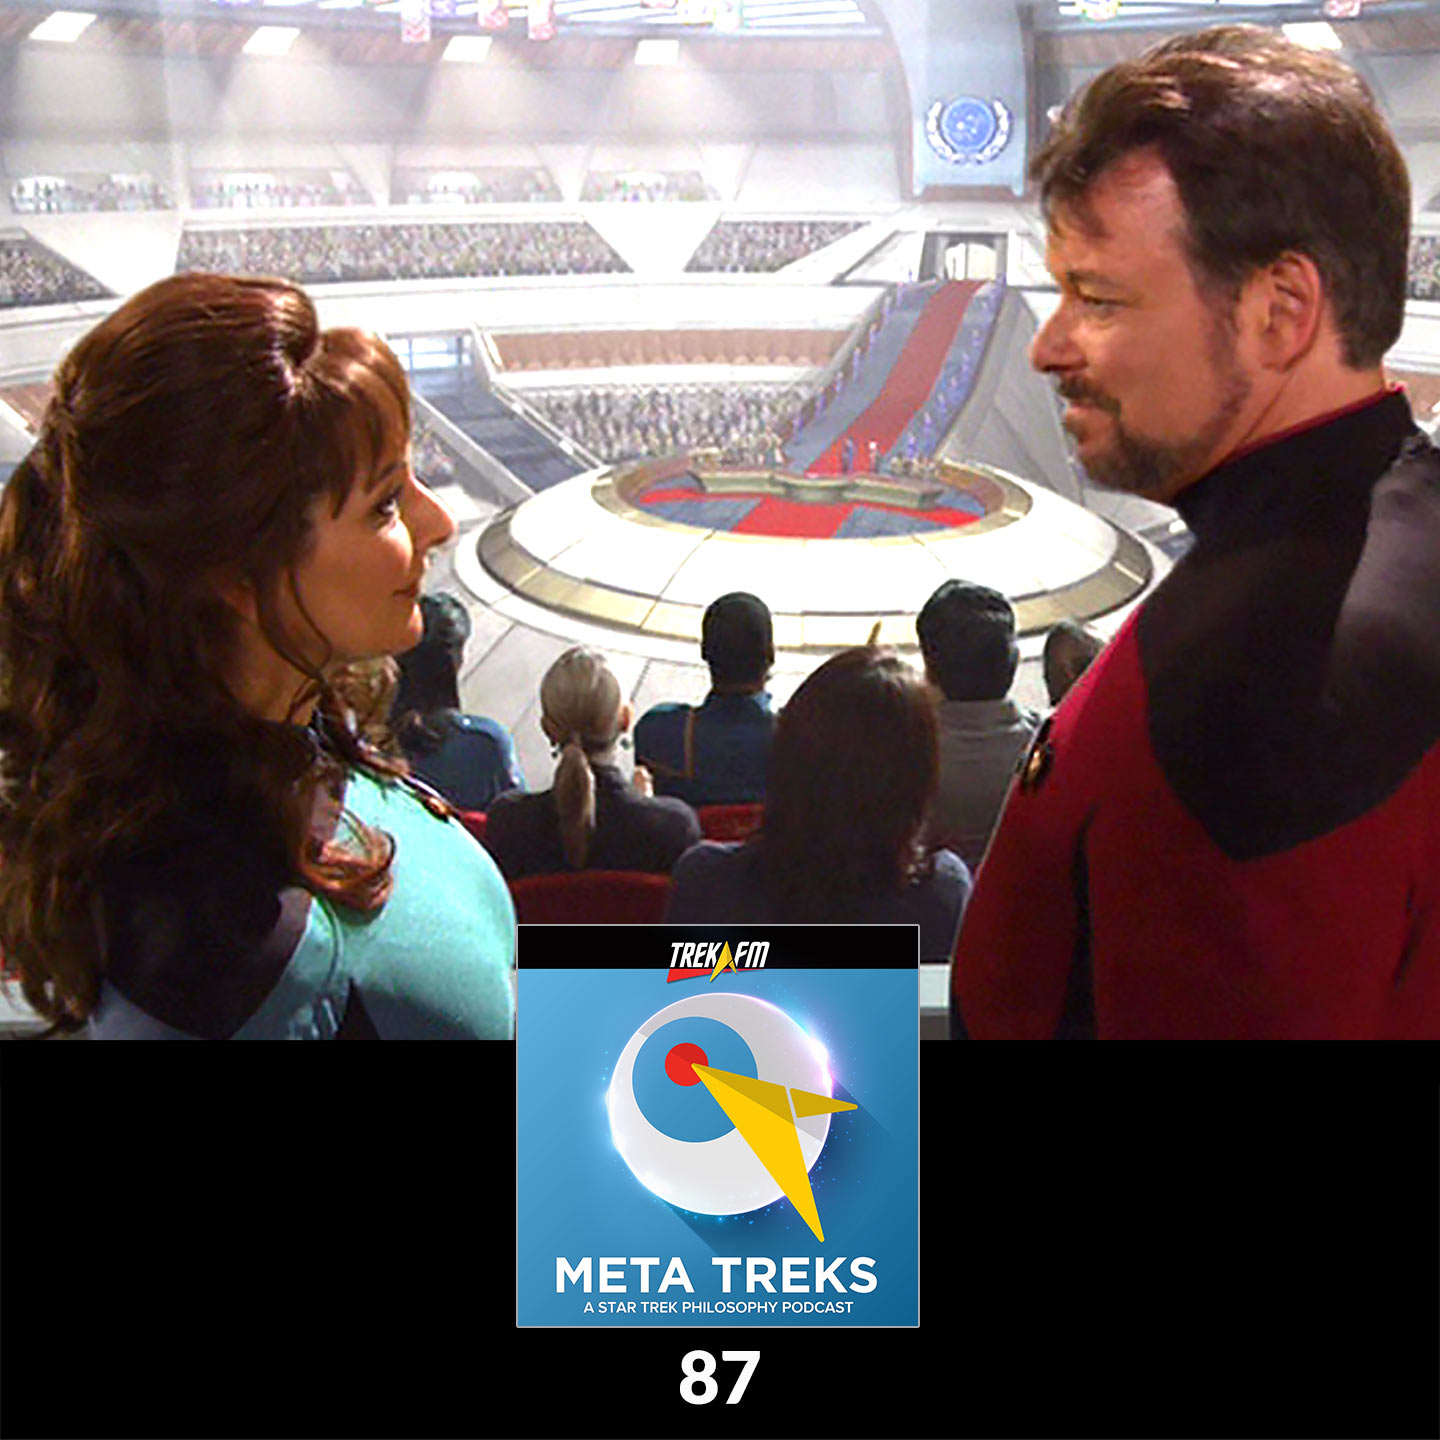 """Meta Treks 87: These Are the Redacted Voyages - Philosophical Themes in """"These Are the Voyages."""""""